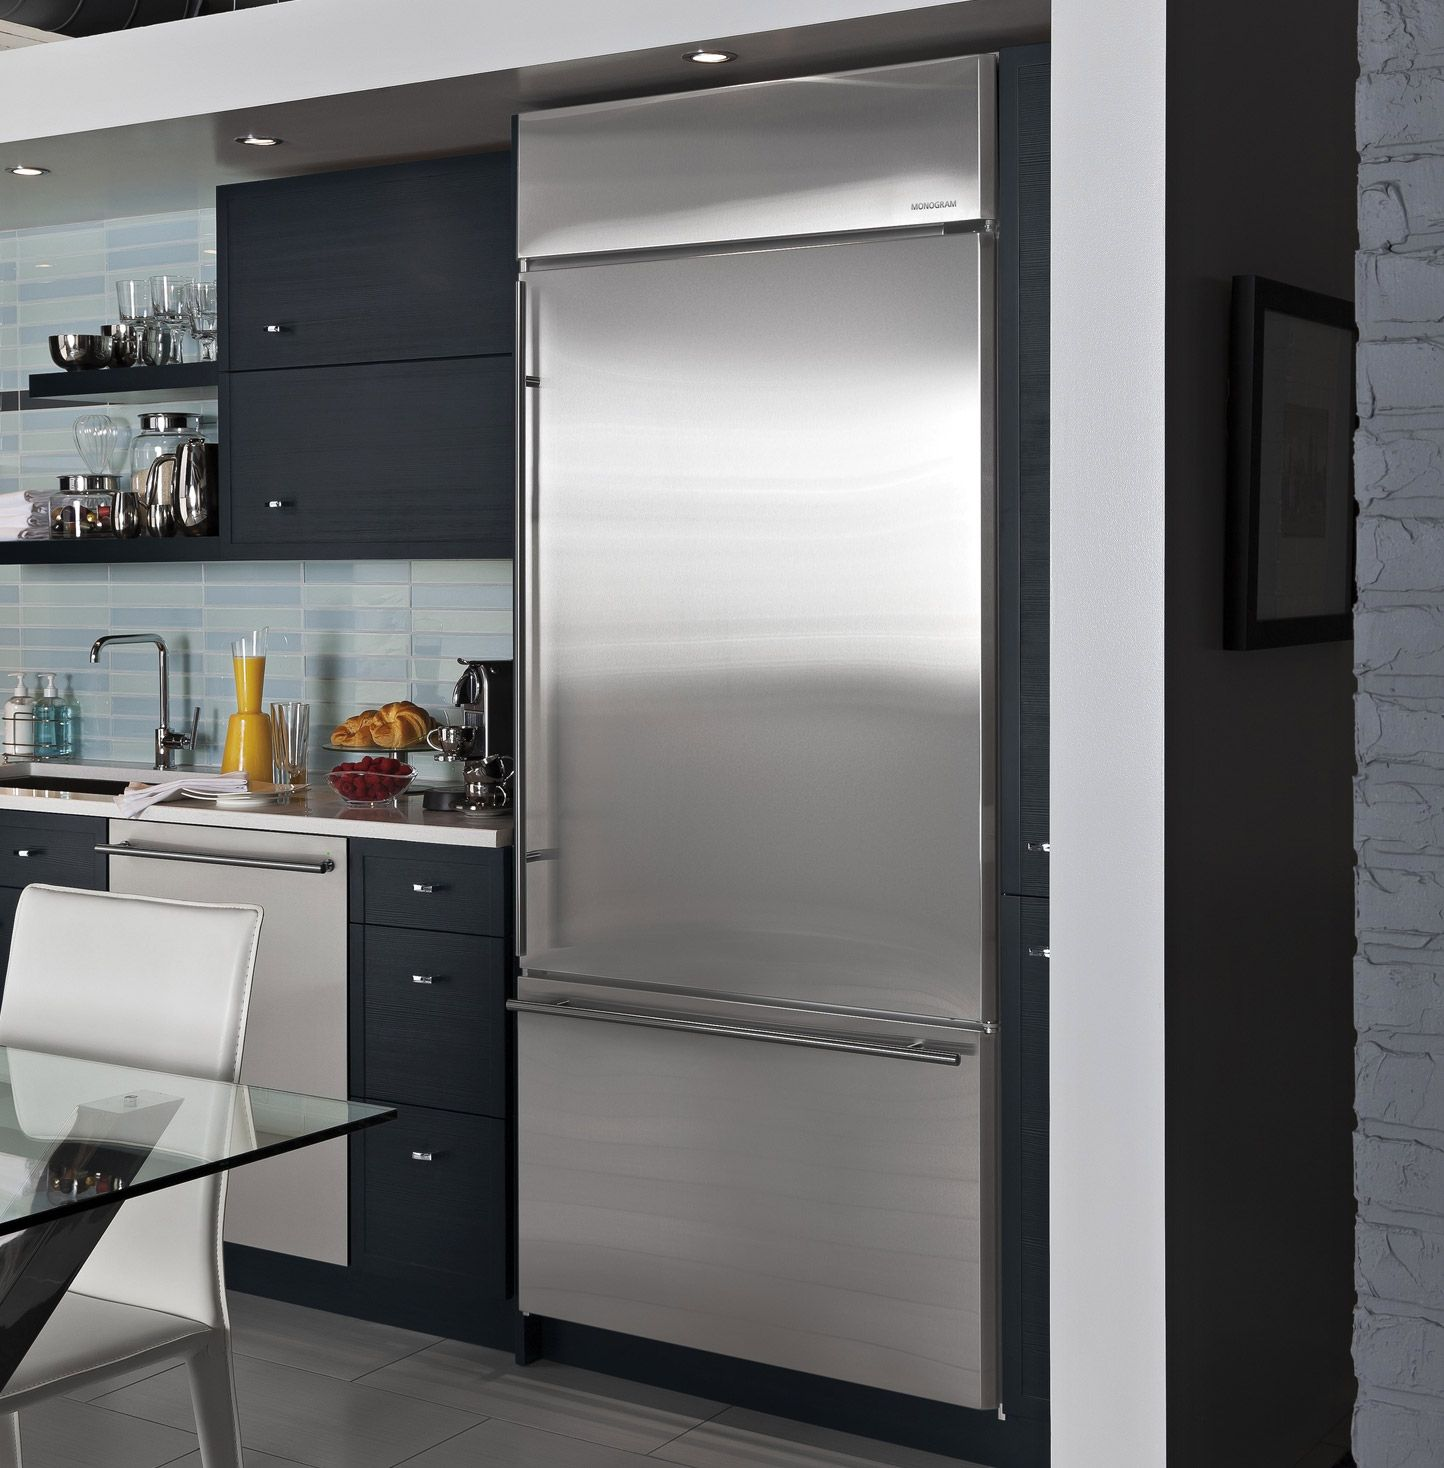 built in and free standing refrigerators monogram kitchens house rh pinterest com